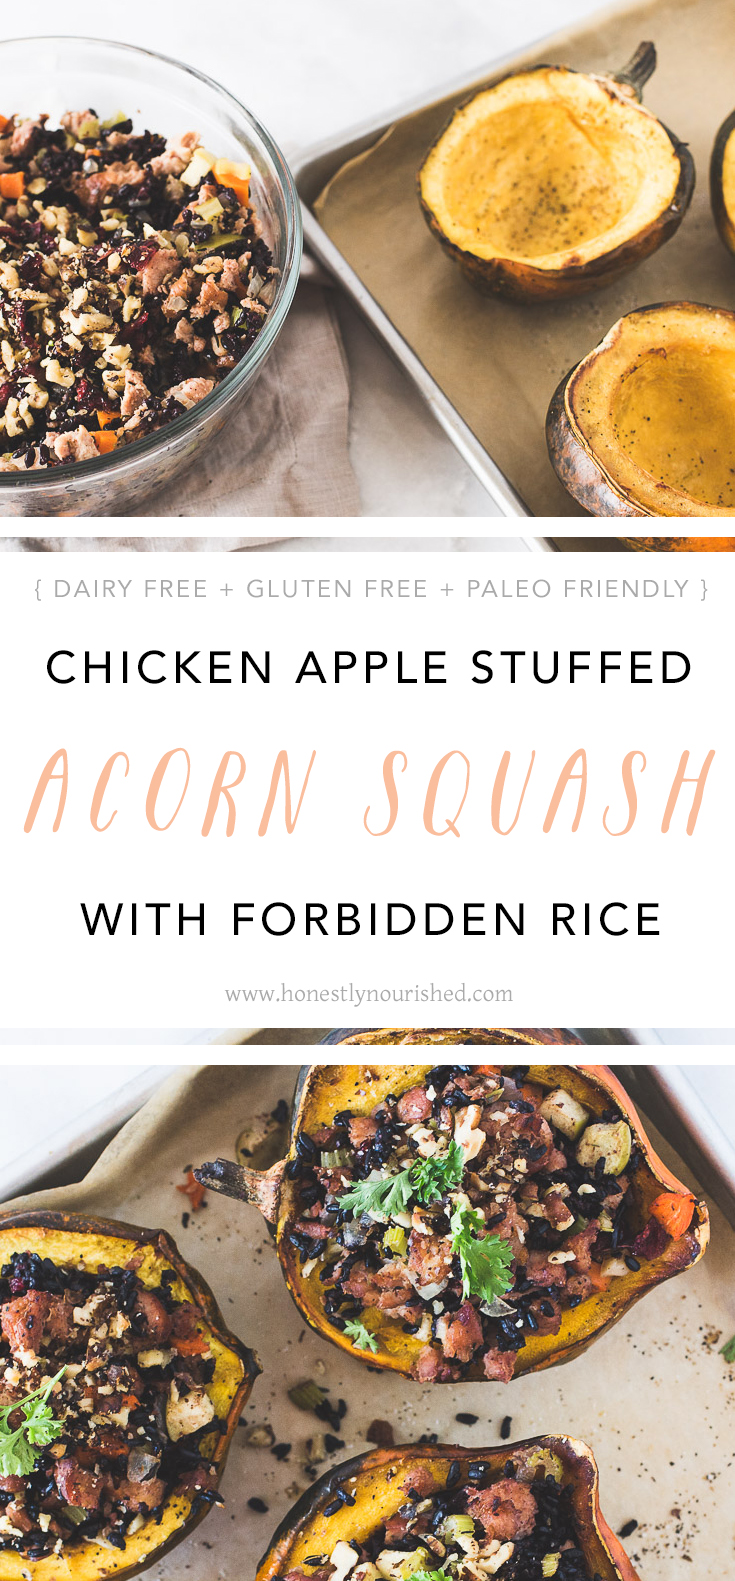 An easy recipe for stuffed acorn squash using cranberry apple chicken sausage, fresh vegetables, and black forbidden rice. Easily make it paleo by swapping rice for cauliflower rice or more veg! | GF, dairy free, paleo friendly | Honestly Nourished